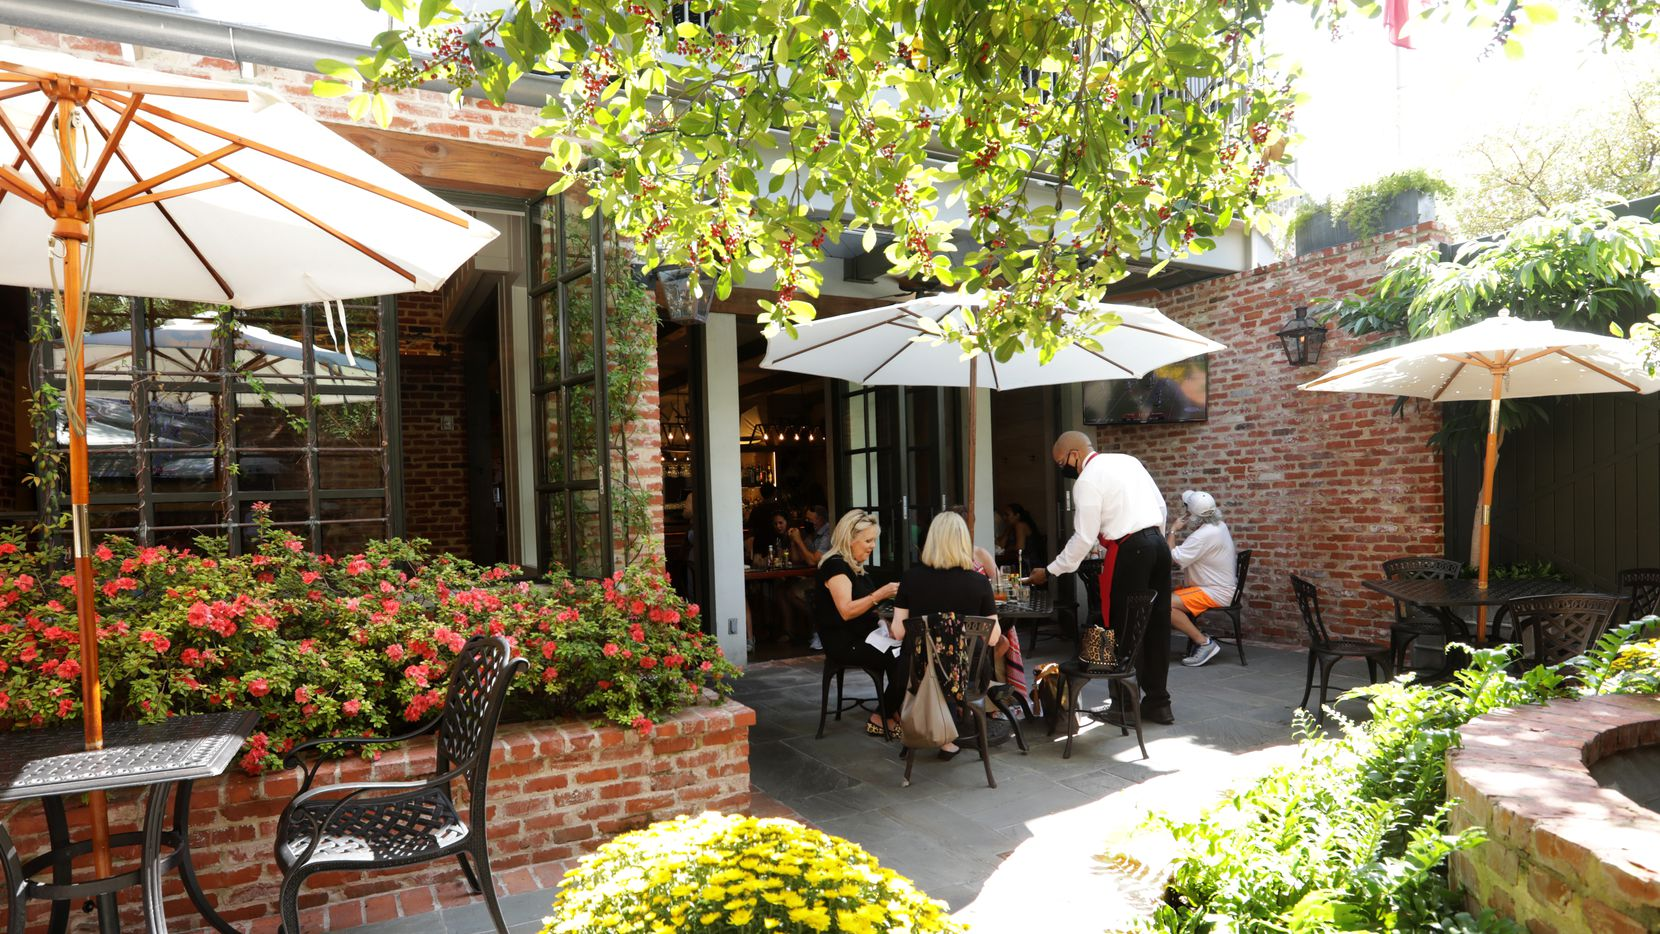 The patio at S&D Oyster Company in Uptown Dallas is a quiet, comfortable spot that feels straight out of New Orleans.